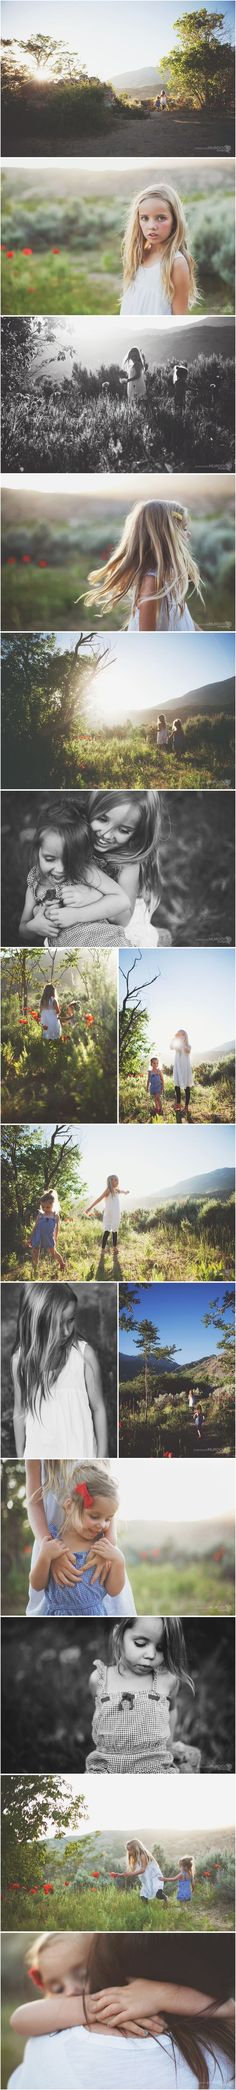 Documentary Inspired | Lifestyle Photography | Real Moments | Raw Emotion | Sisters: